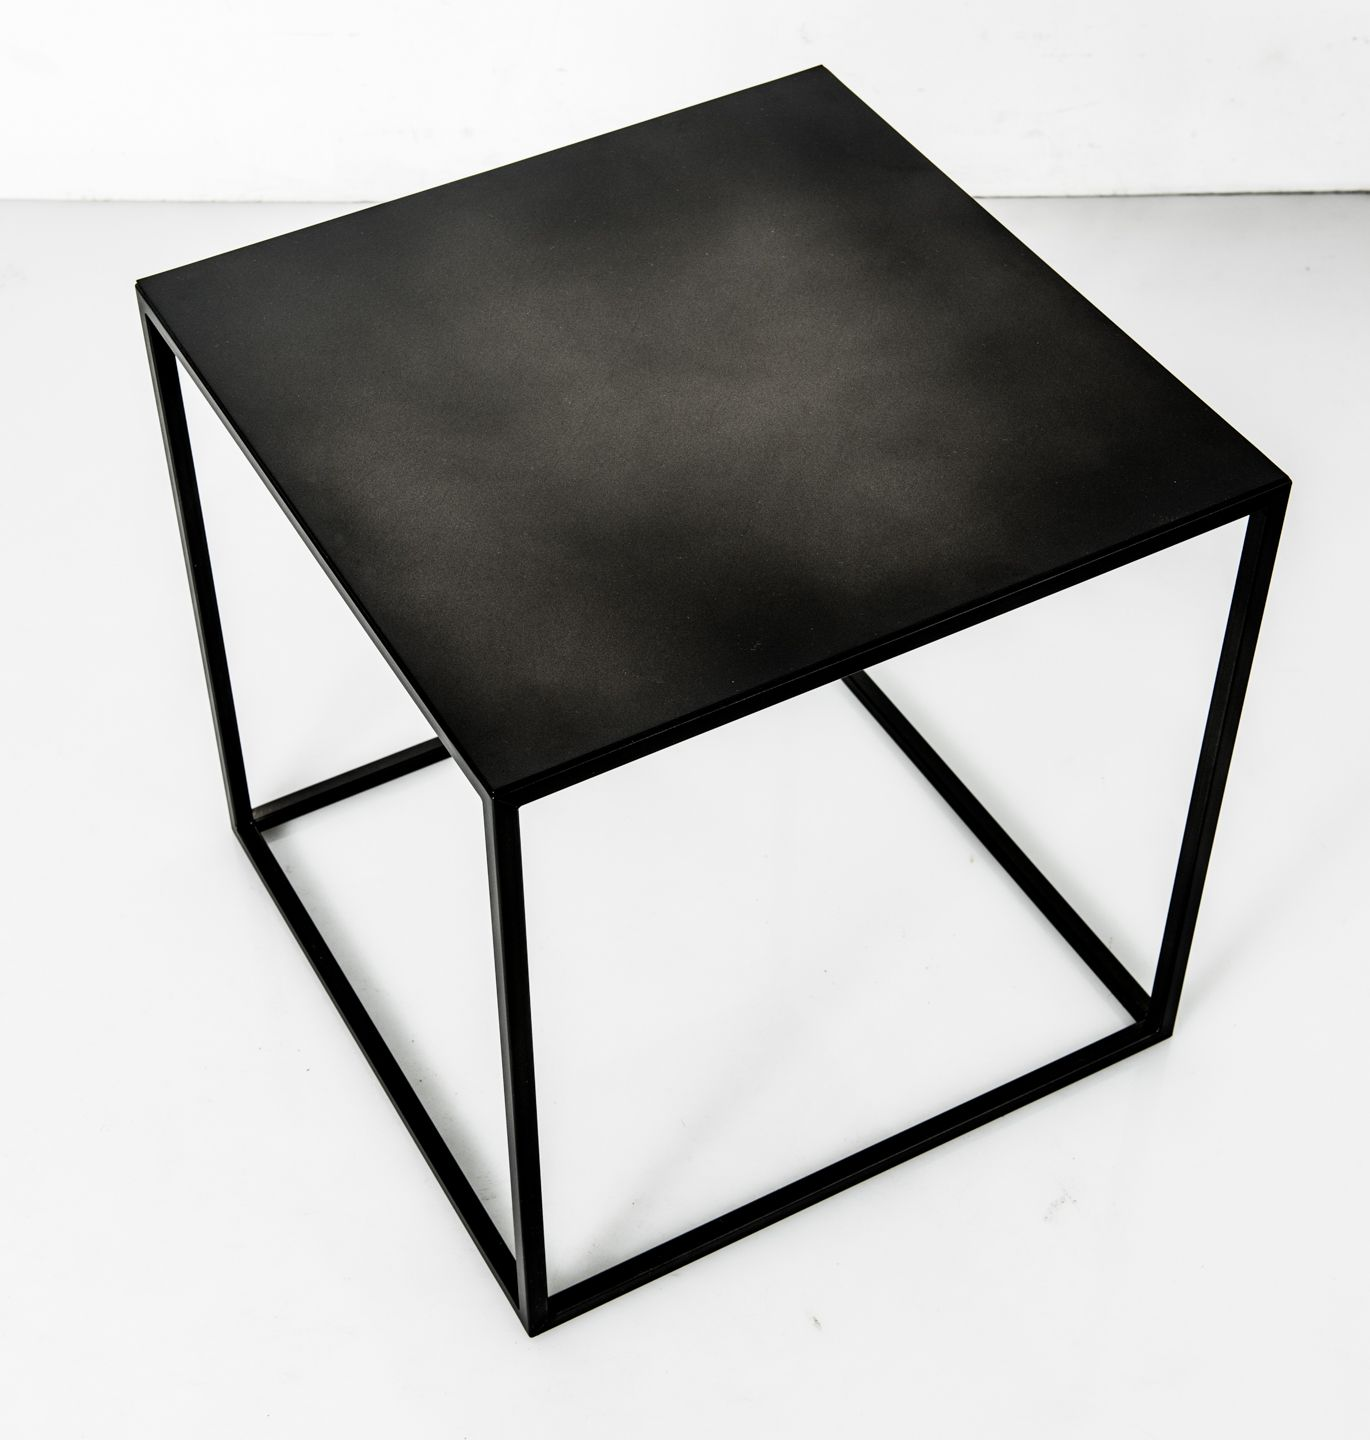 The Black Frisco is a black powder coated steel cube table